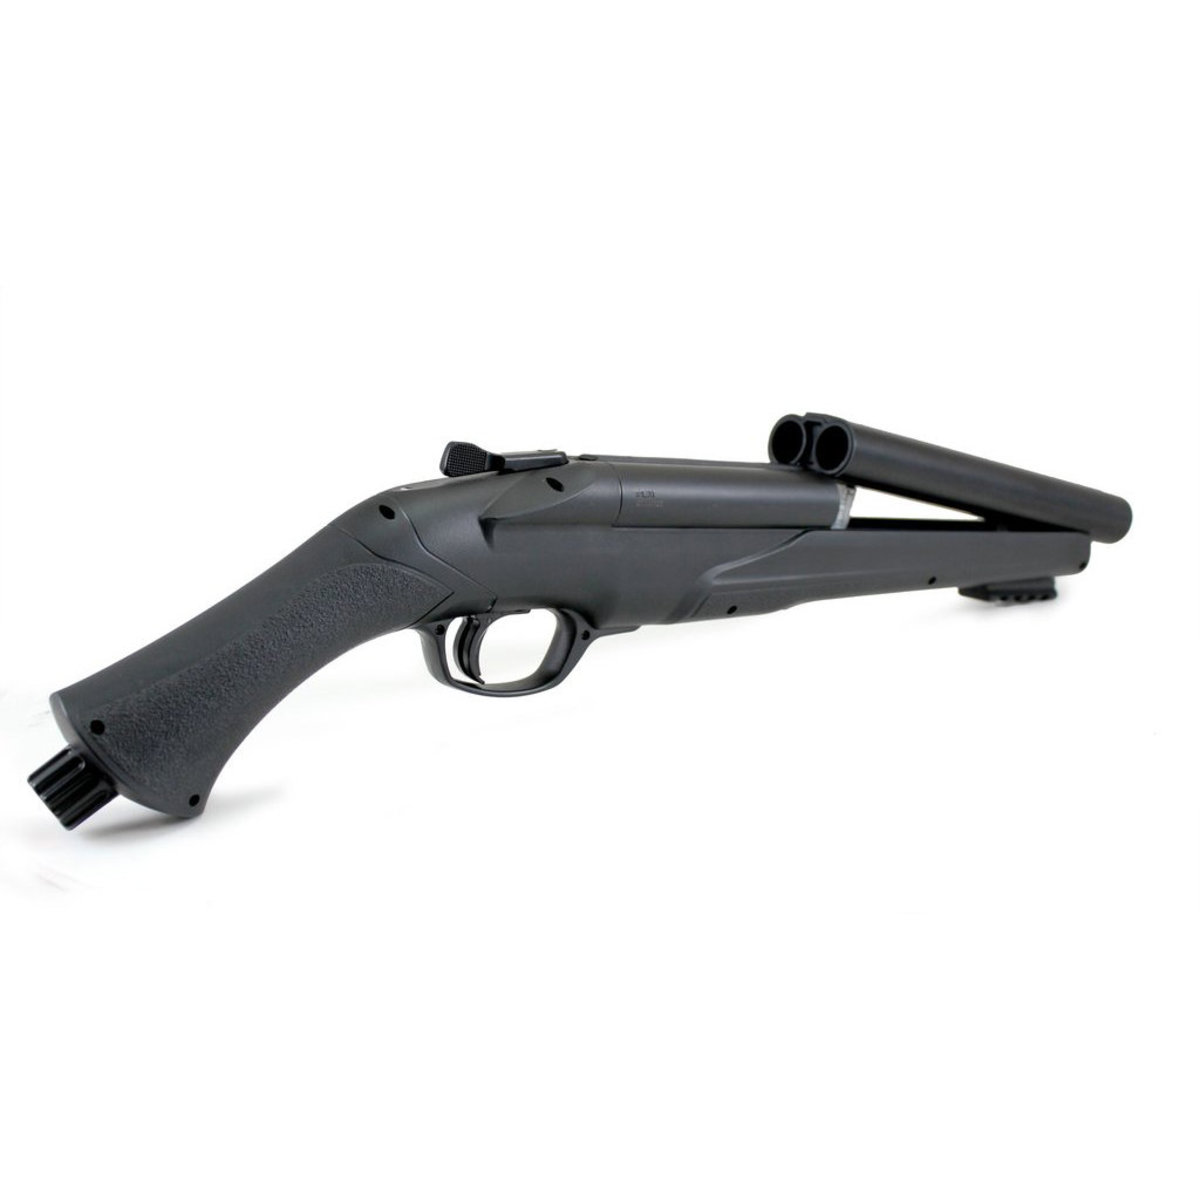 View larger image of Umarex T4E HDS 68 Caliber Paintball Shotgun